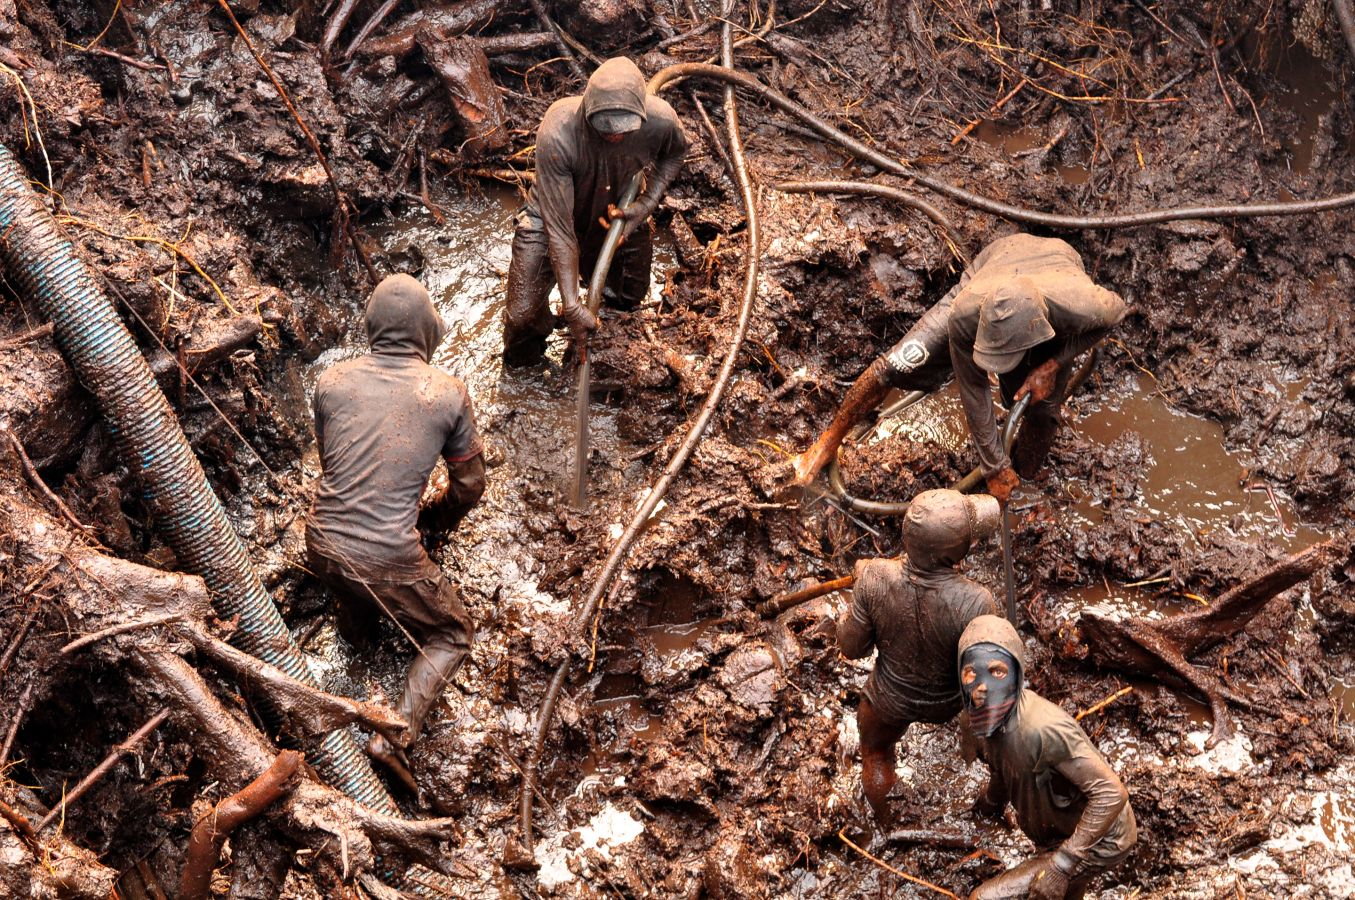 Miners in a gold mine pit in Indonesia